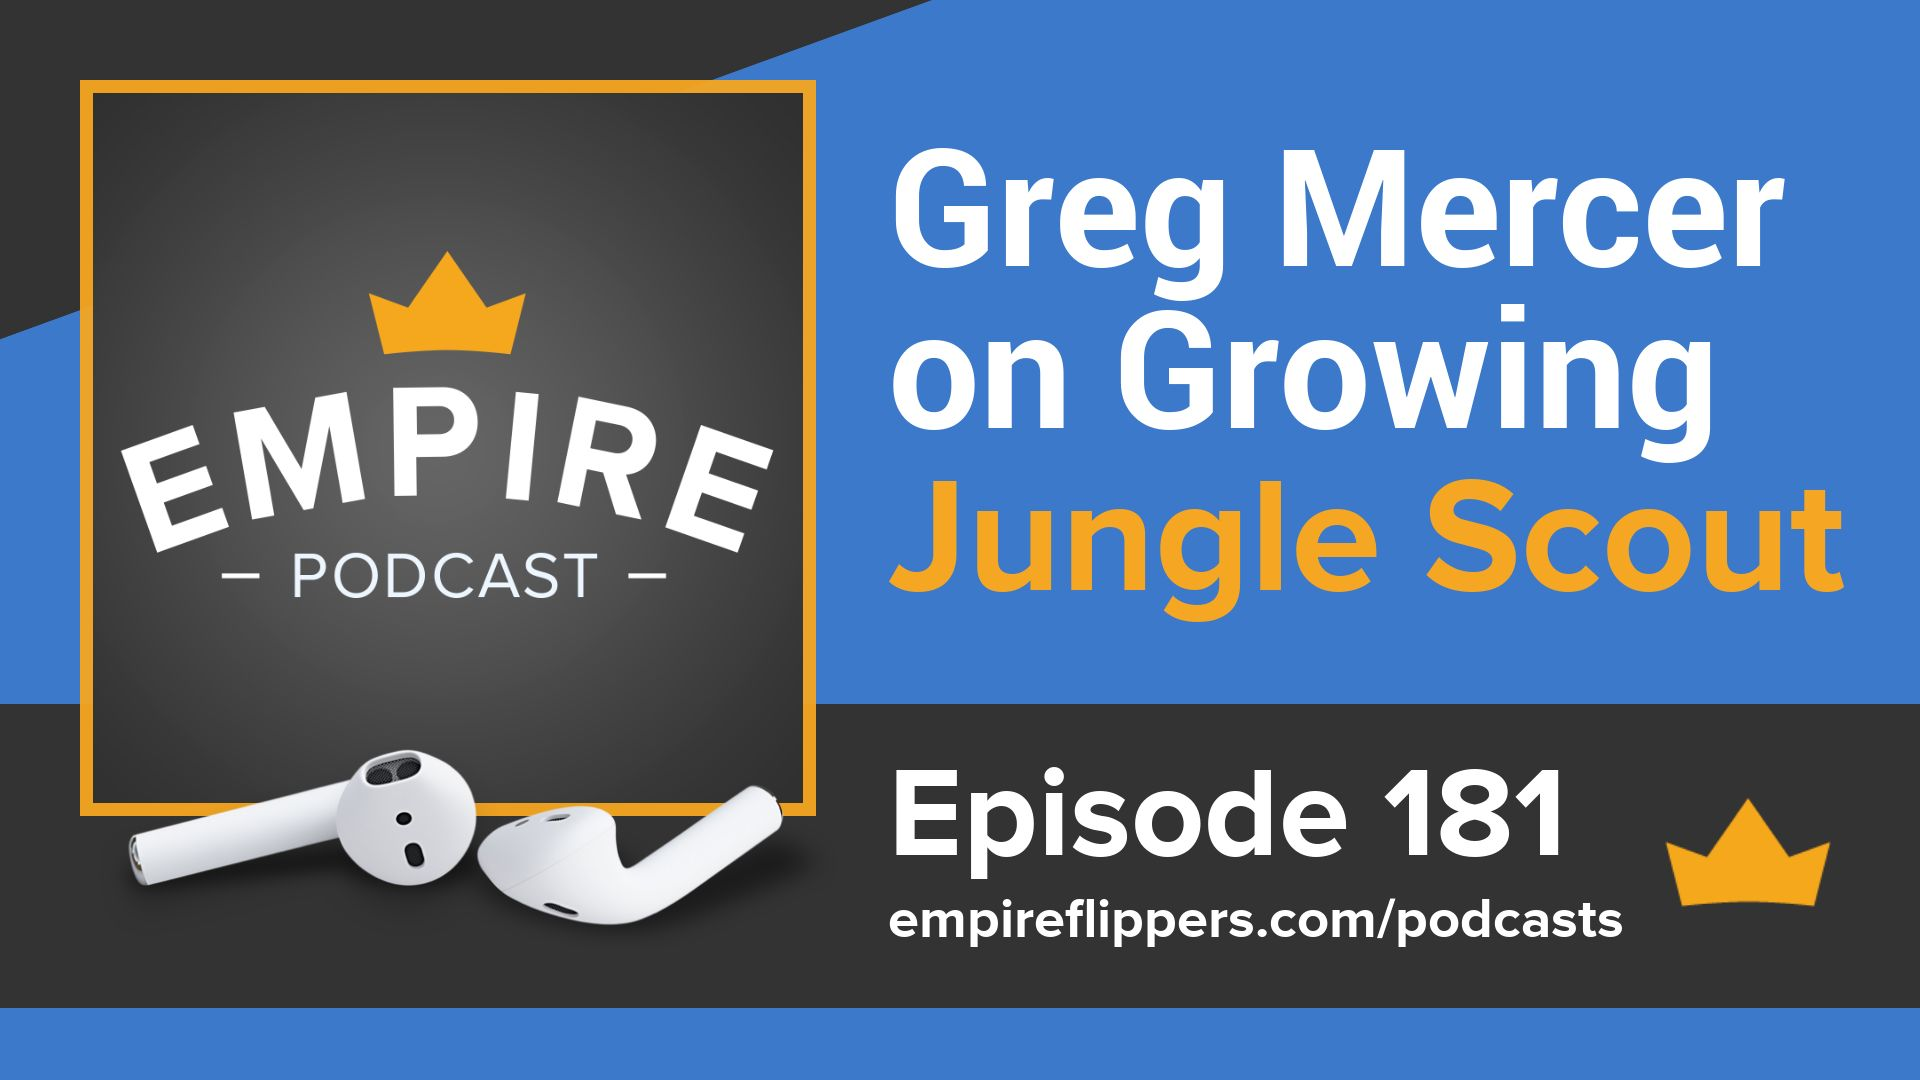 Greg Mercer on Growing Jungle Scout